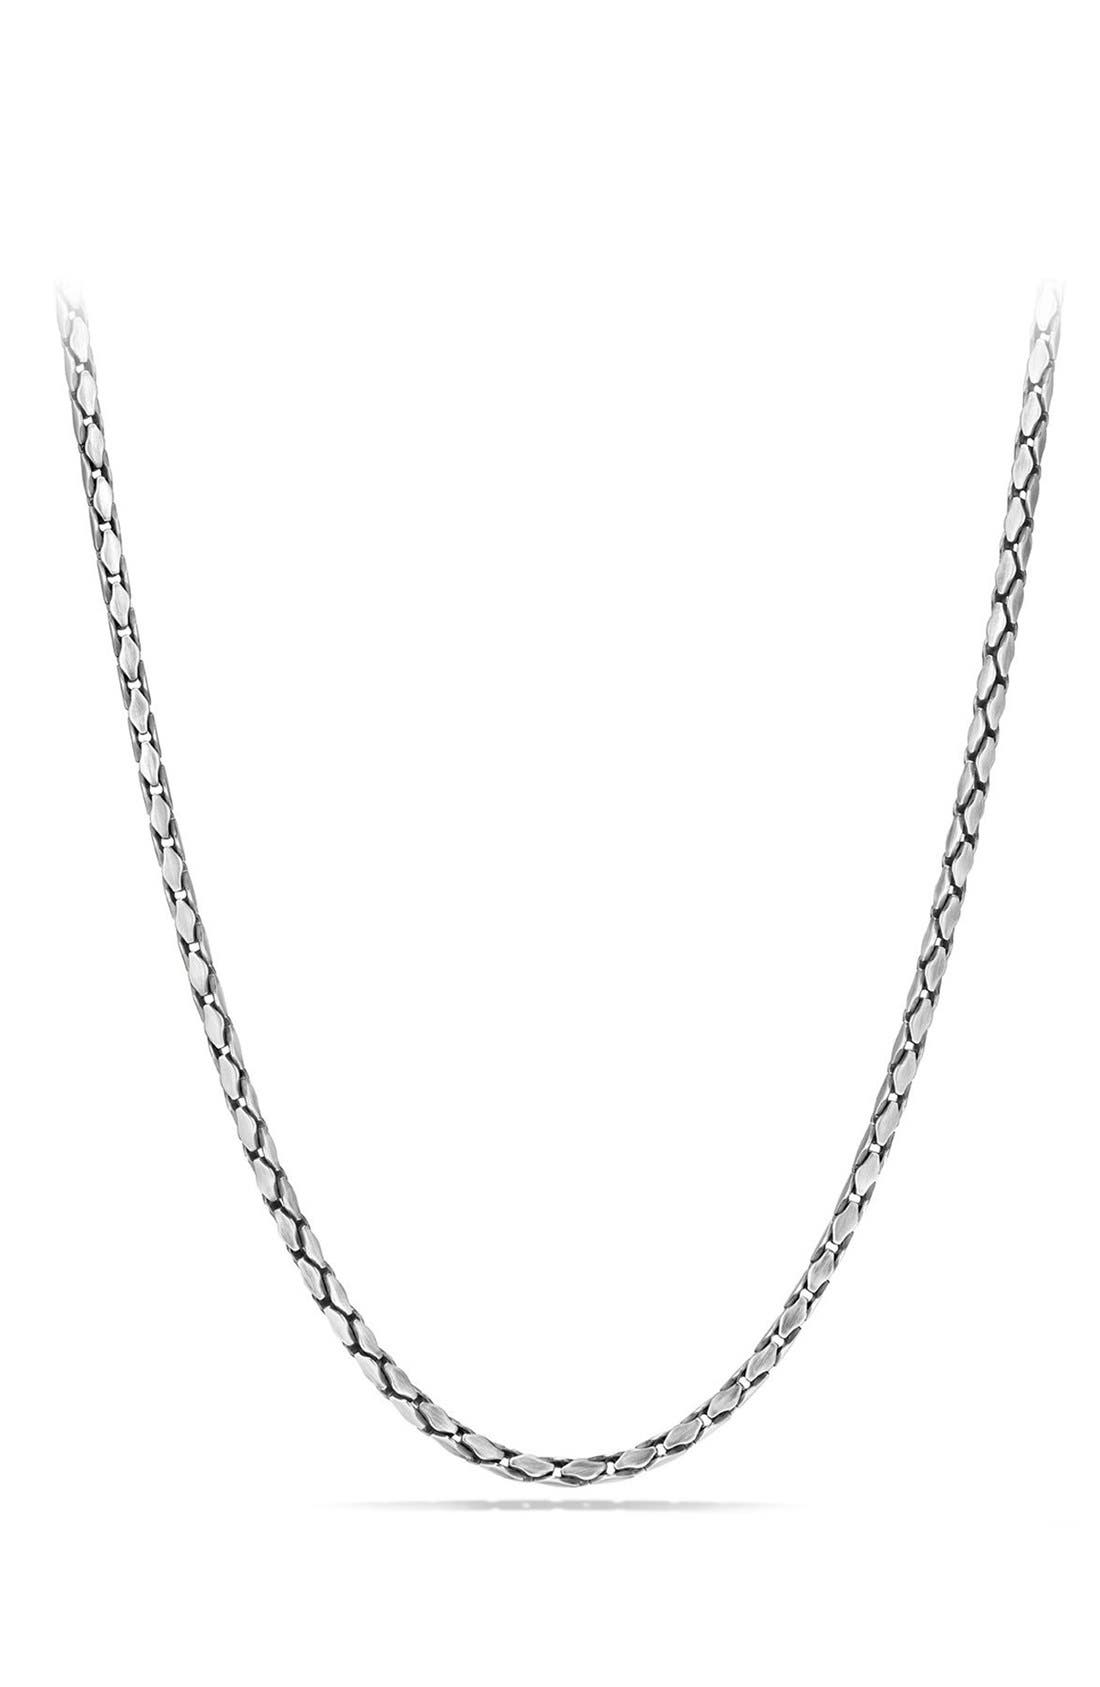 DAVID YURMAN Chain Small Fluted Chain Necklace, 3.8mm